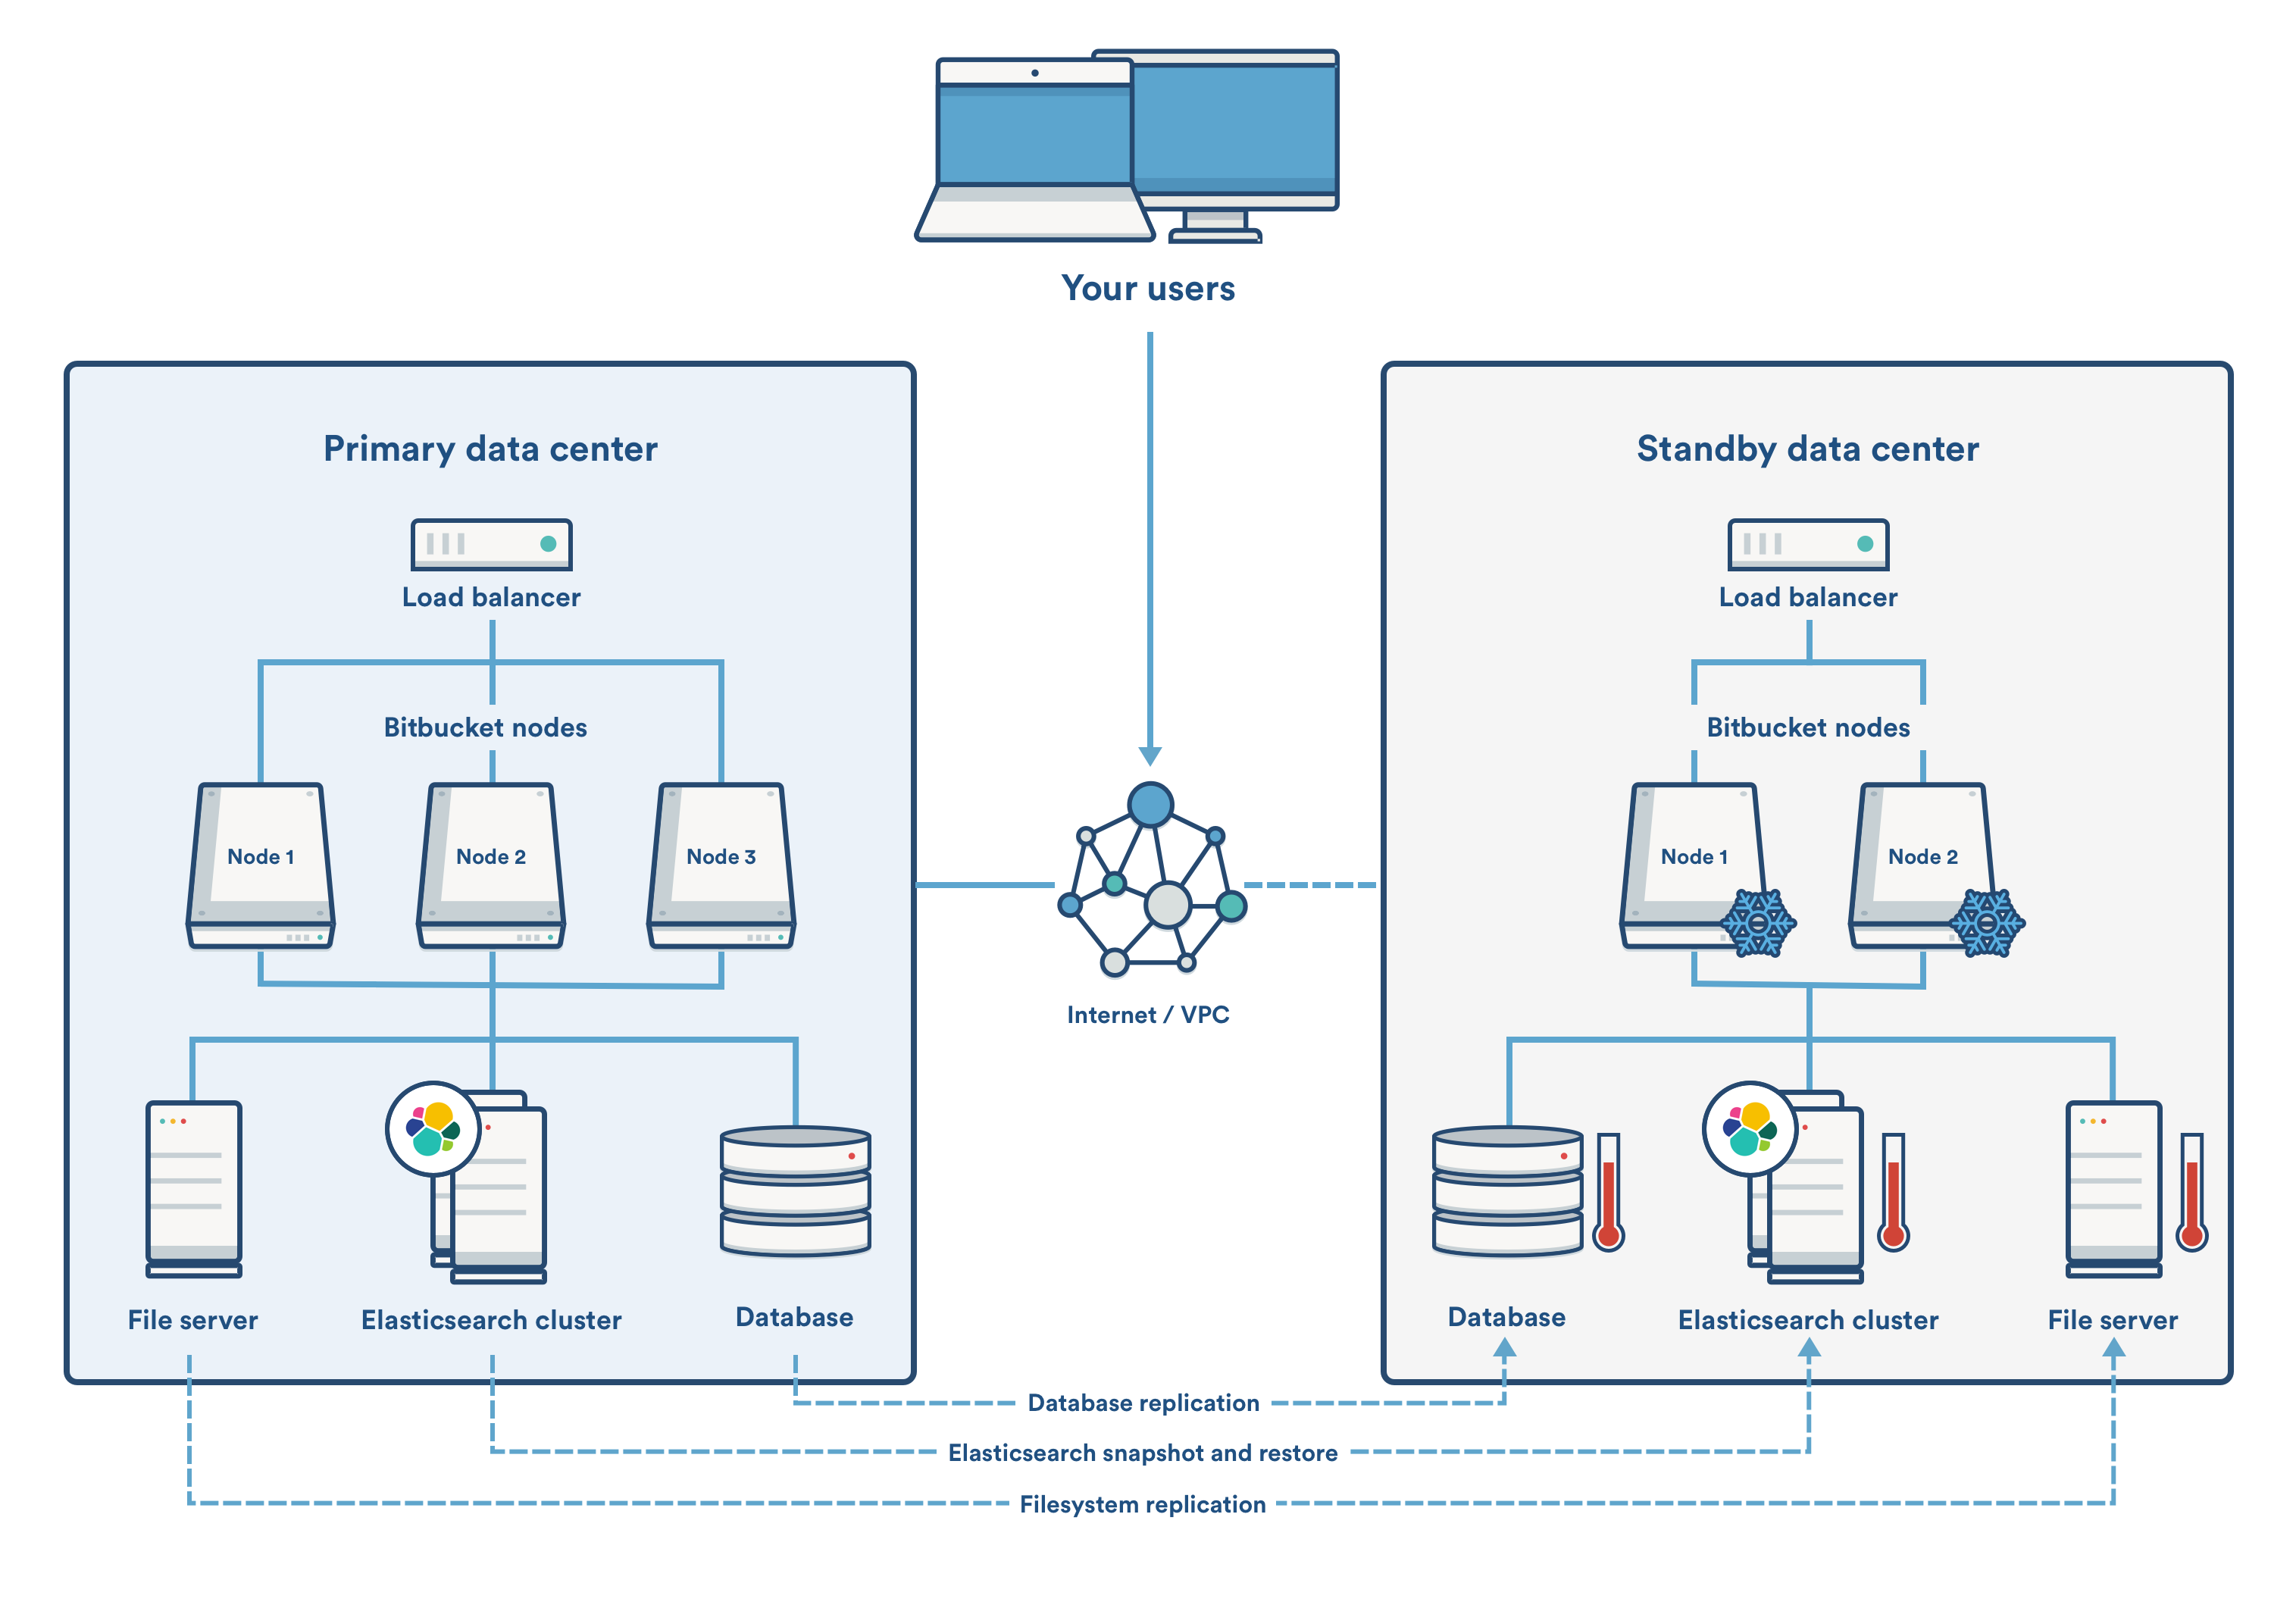 schematic diagram html with Disaster Recovery Guide For Bitbucket Data Center 833940586 on Index also Htm likewise Bms further Disaster Recovery Guide For Bitbucket Data Center 833940586 further Hsehld.